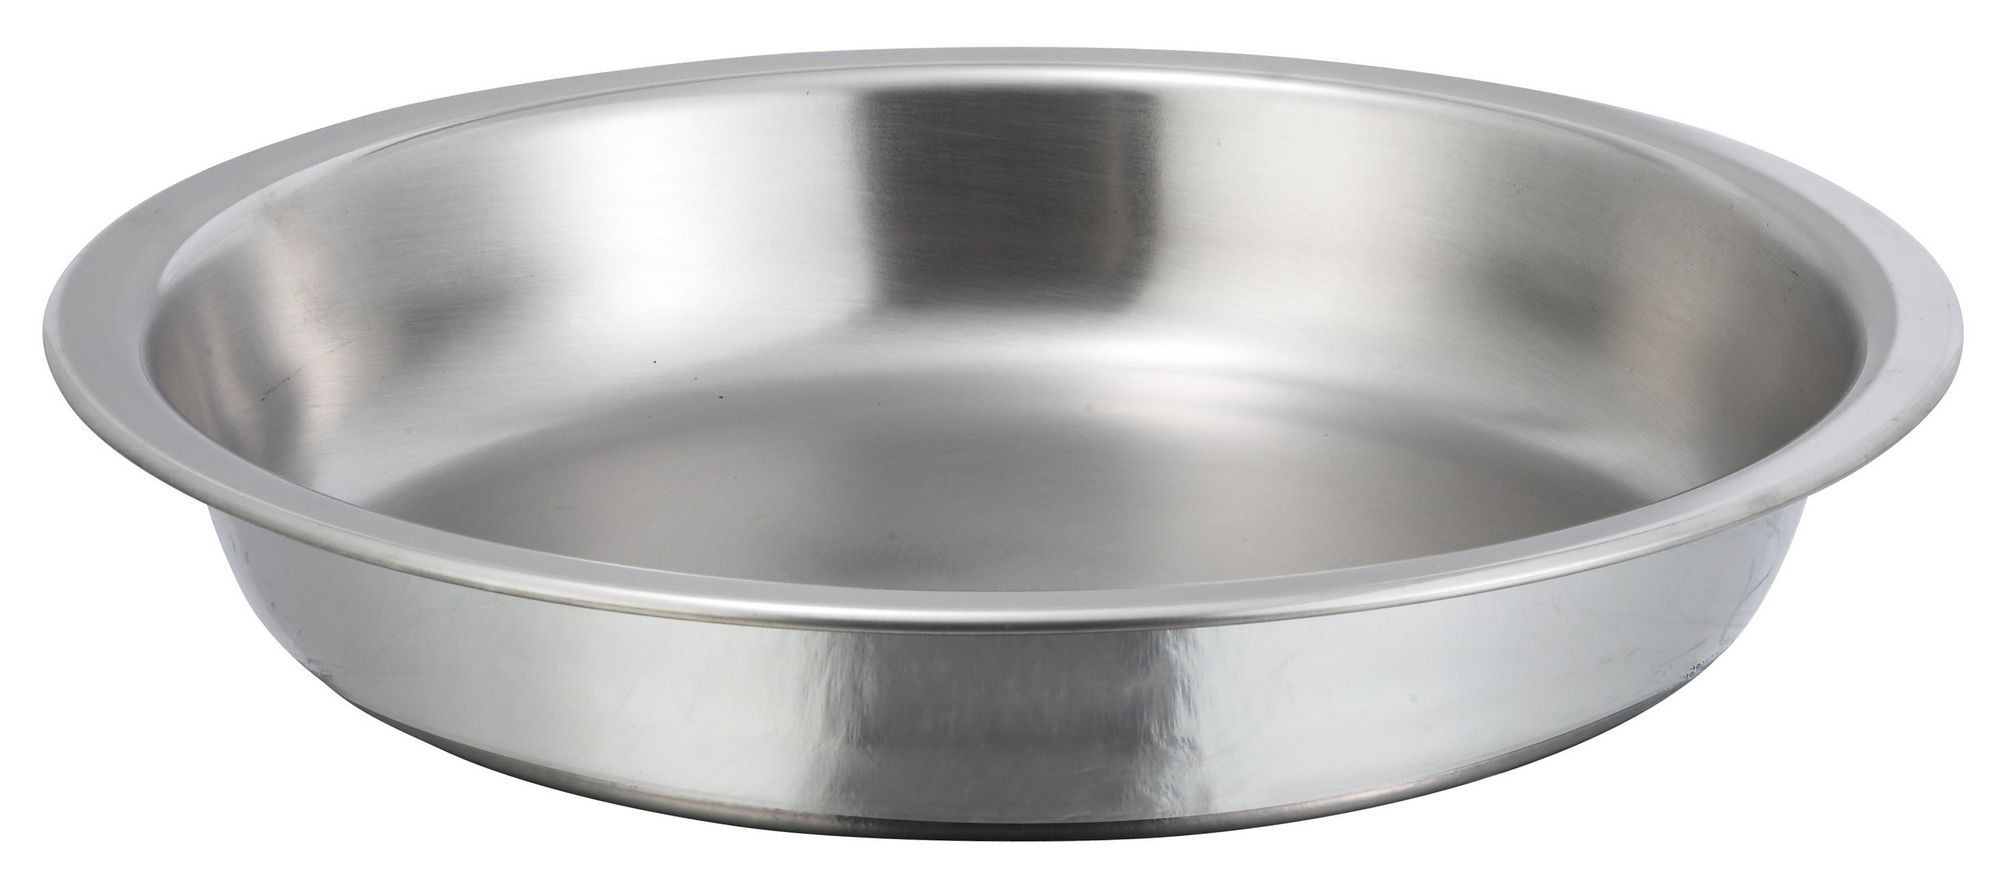 Food Pan for 4 Qt Gold Accented Malibu Round Chafer 203